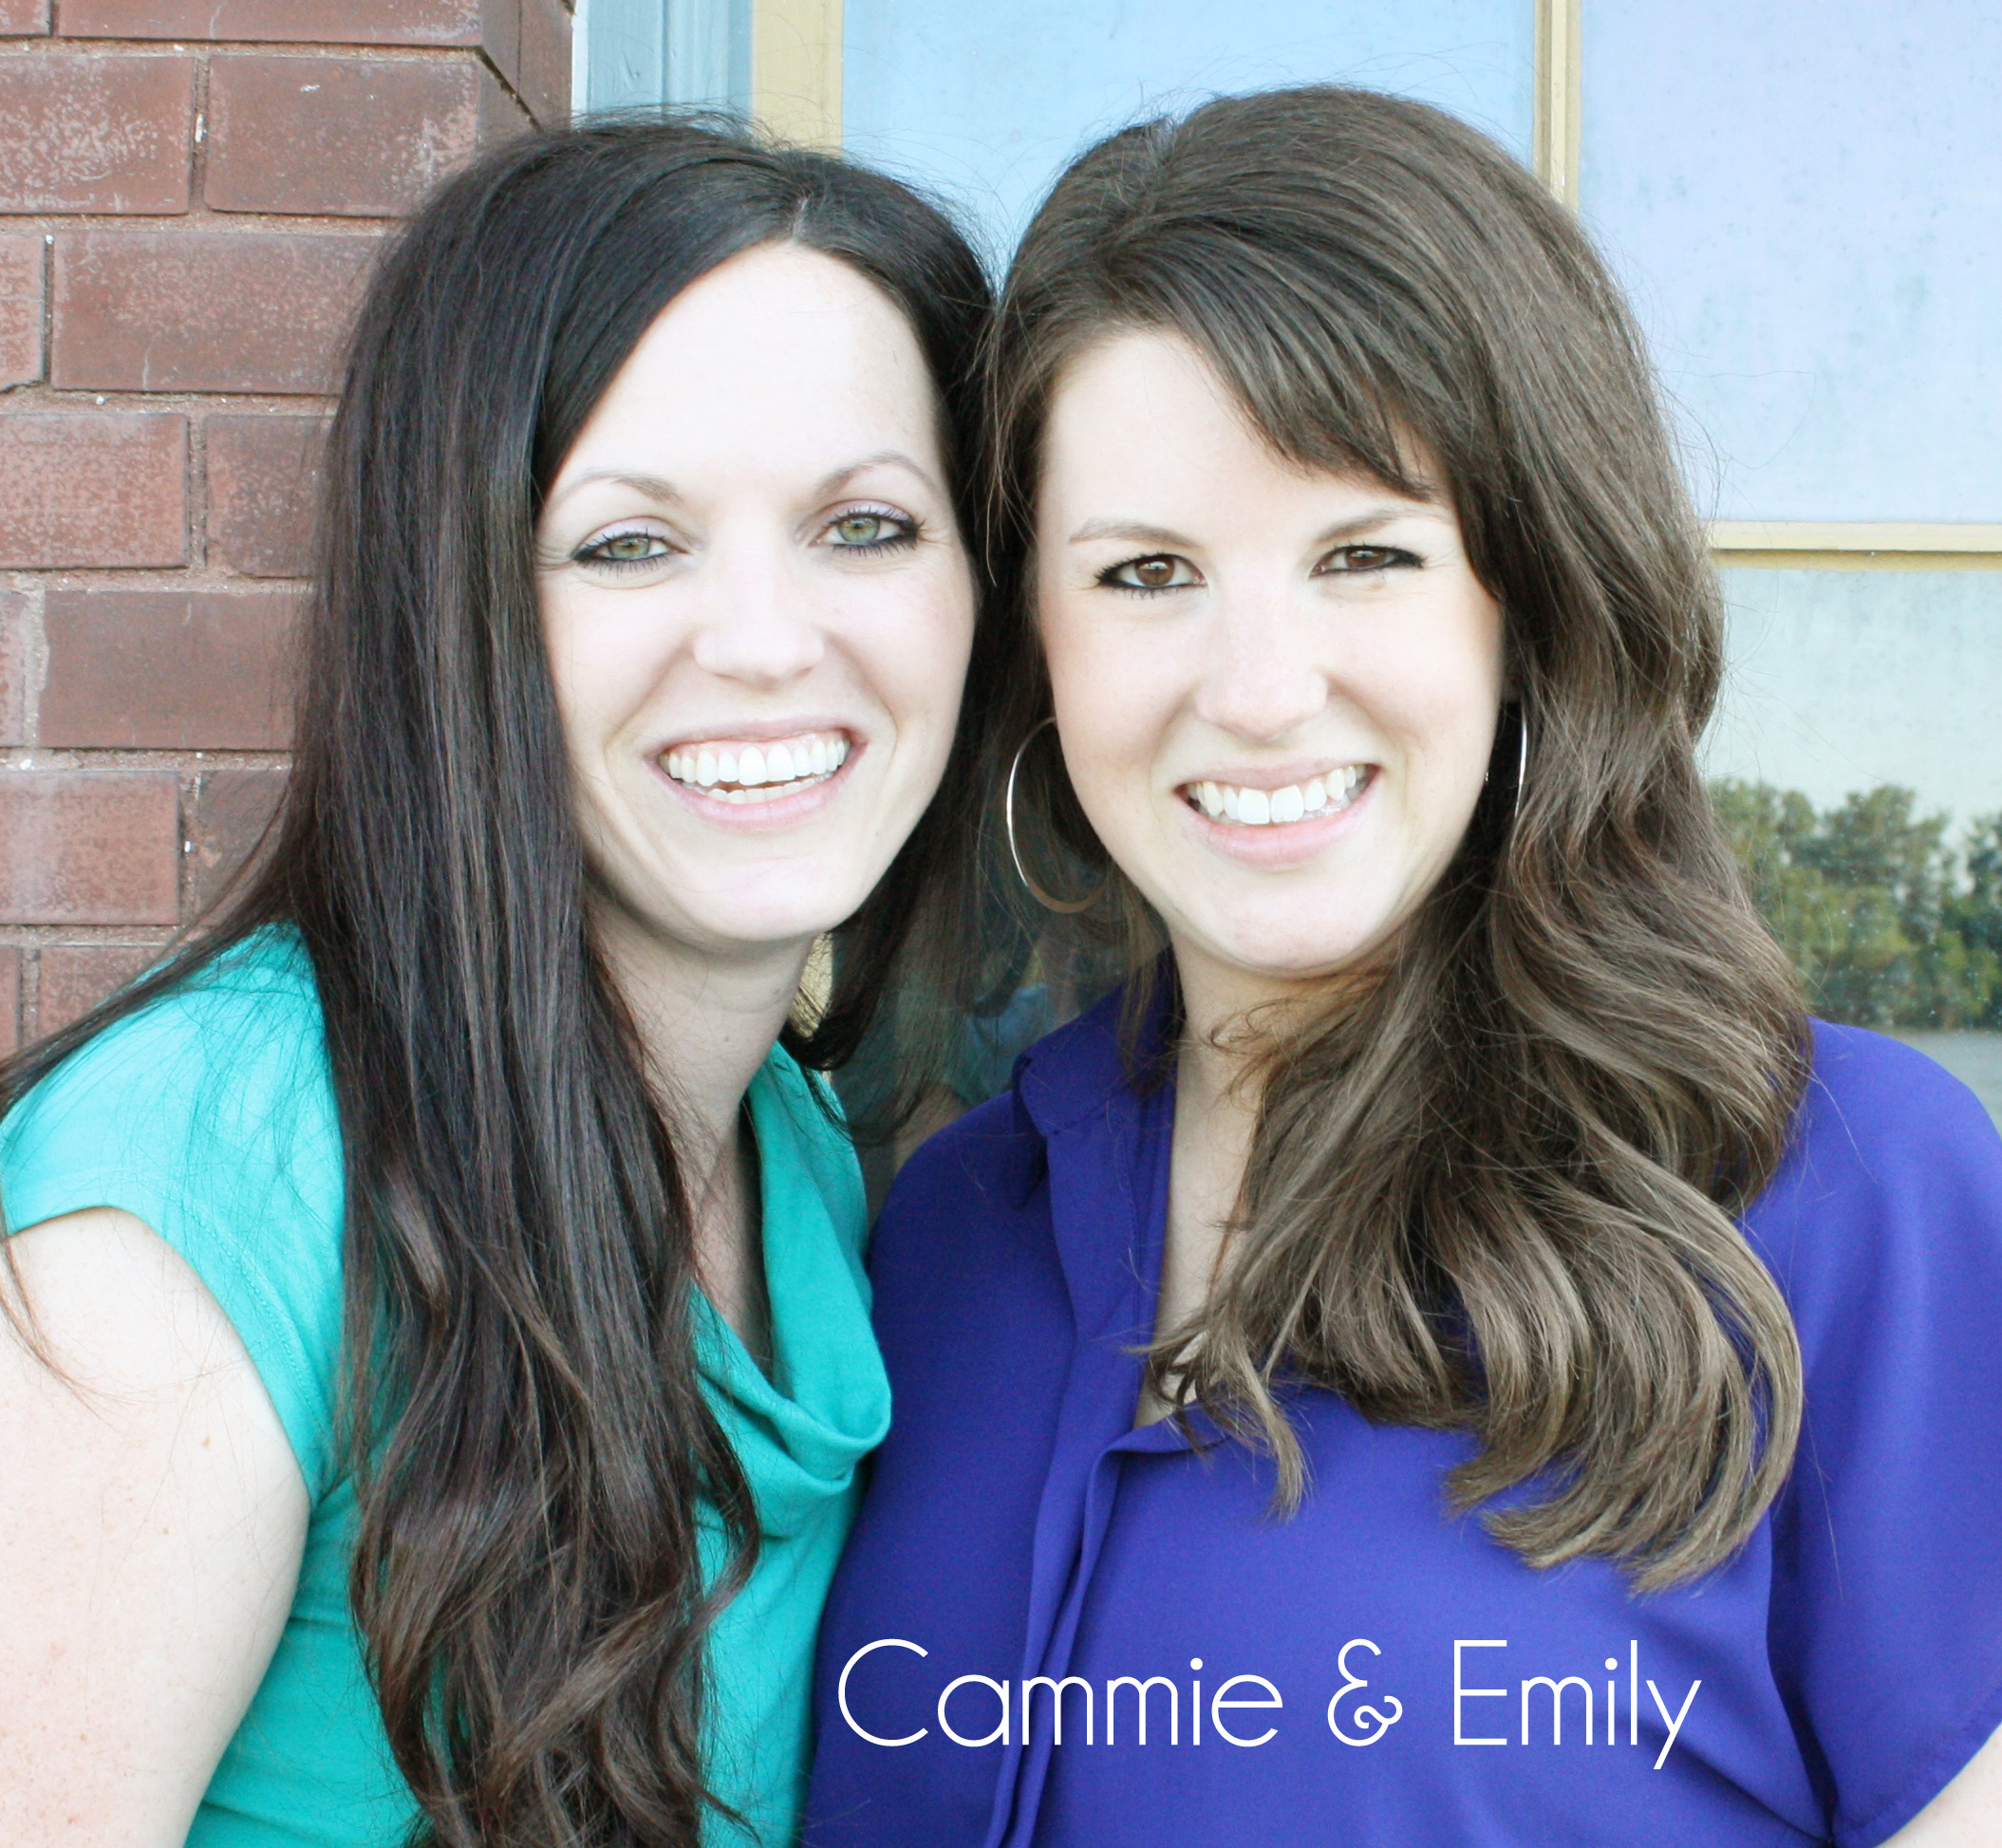 Cammie & Emily